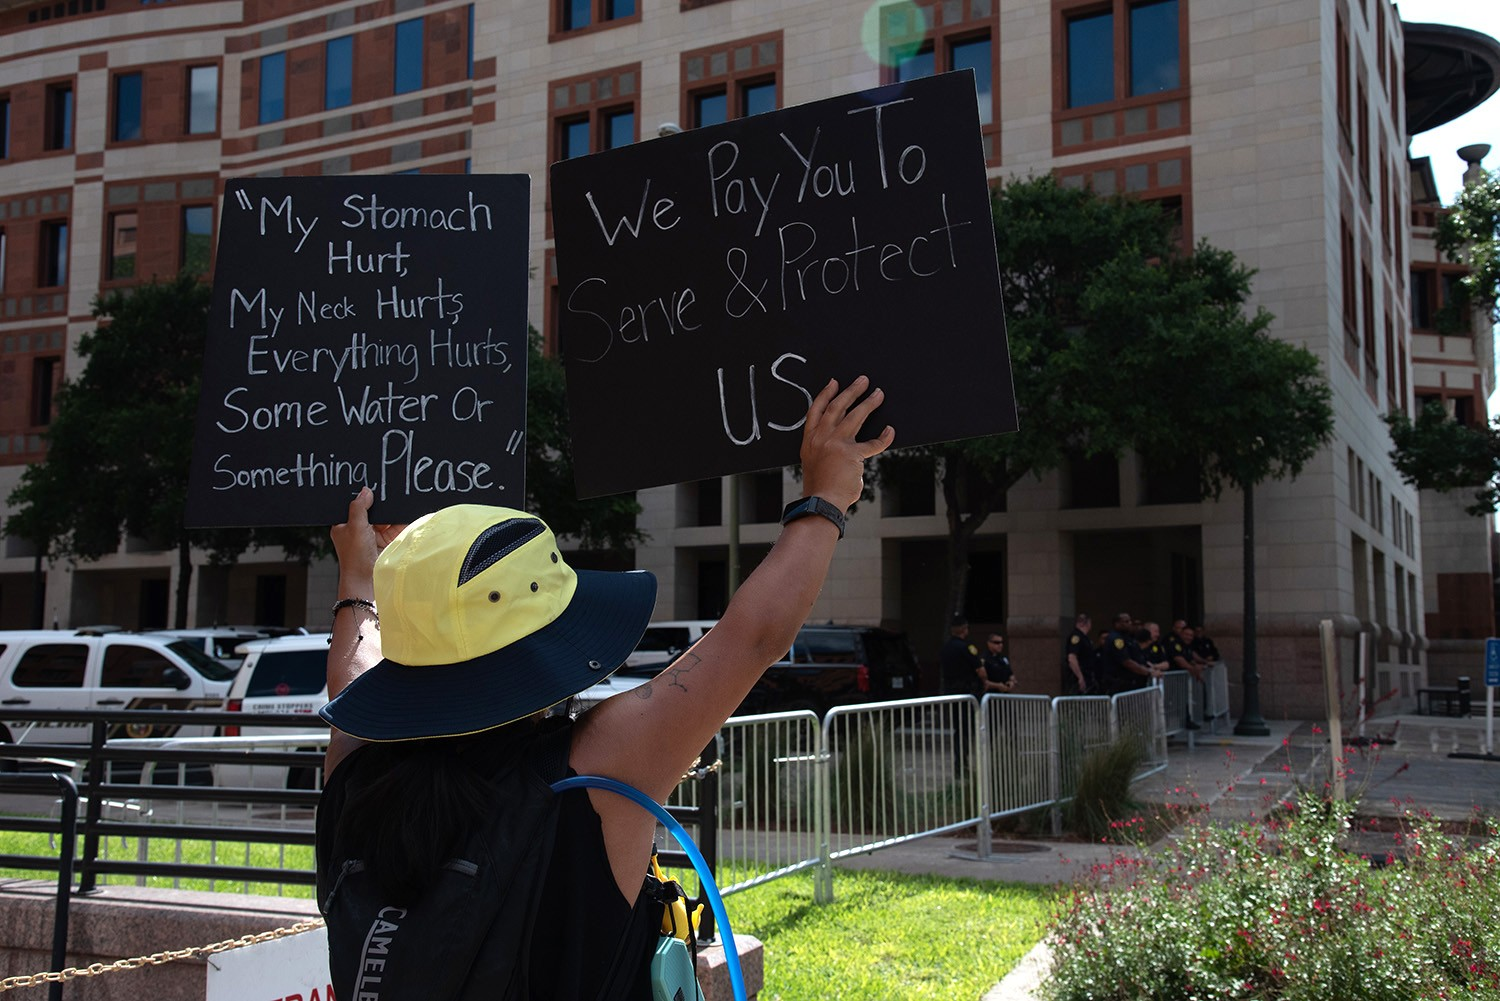 Protestors Katherine Torres, 31, holds signs up towards San Antonio police officers in front of the Bexar County Courthouse, Thursday, June 4.Photo by V. Finster | Heron Contributor